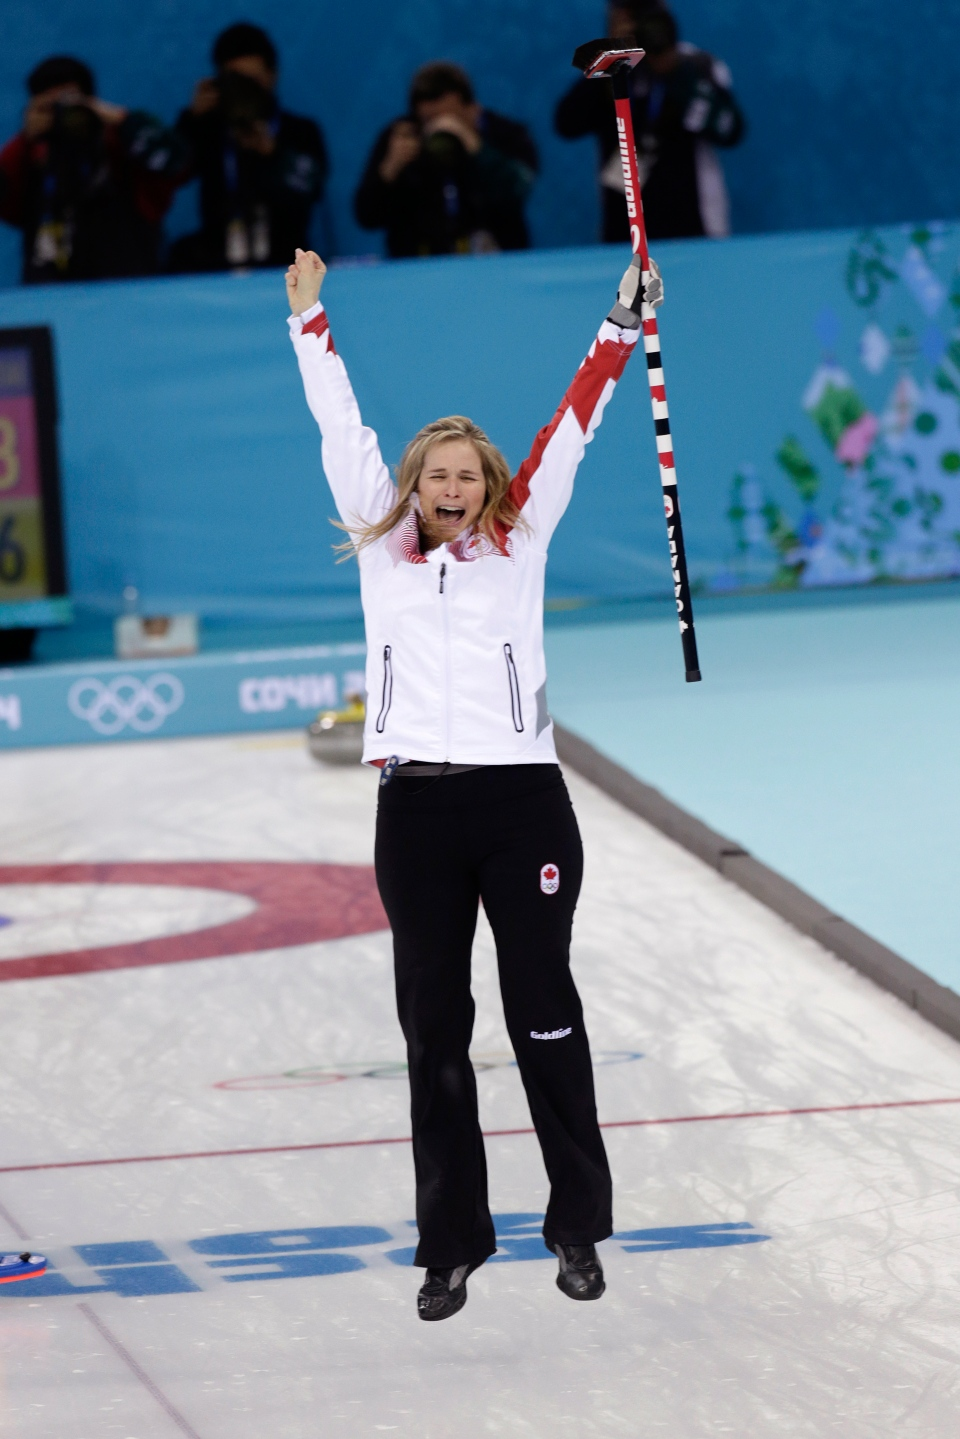 Canada's skip Jennifer Jones celebrates after winning the women's curling gold medal game against Sweden at the 2014 Winter Olympics, Thursday, Feb. 20, 2014, in Sochi, Russia. (AP / Wong Maye-E)